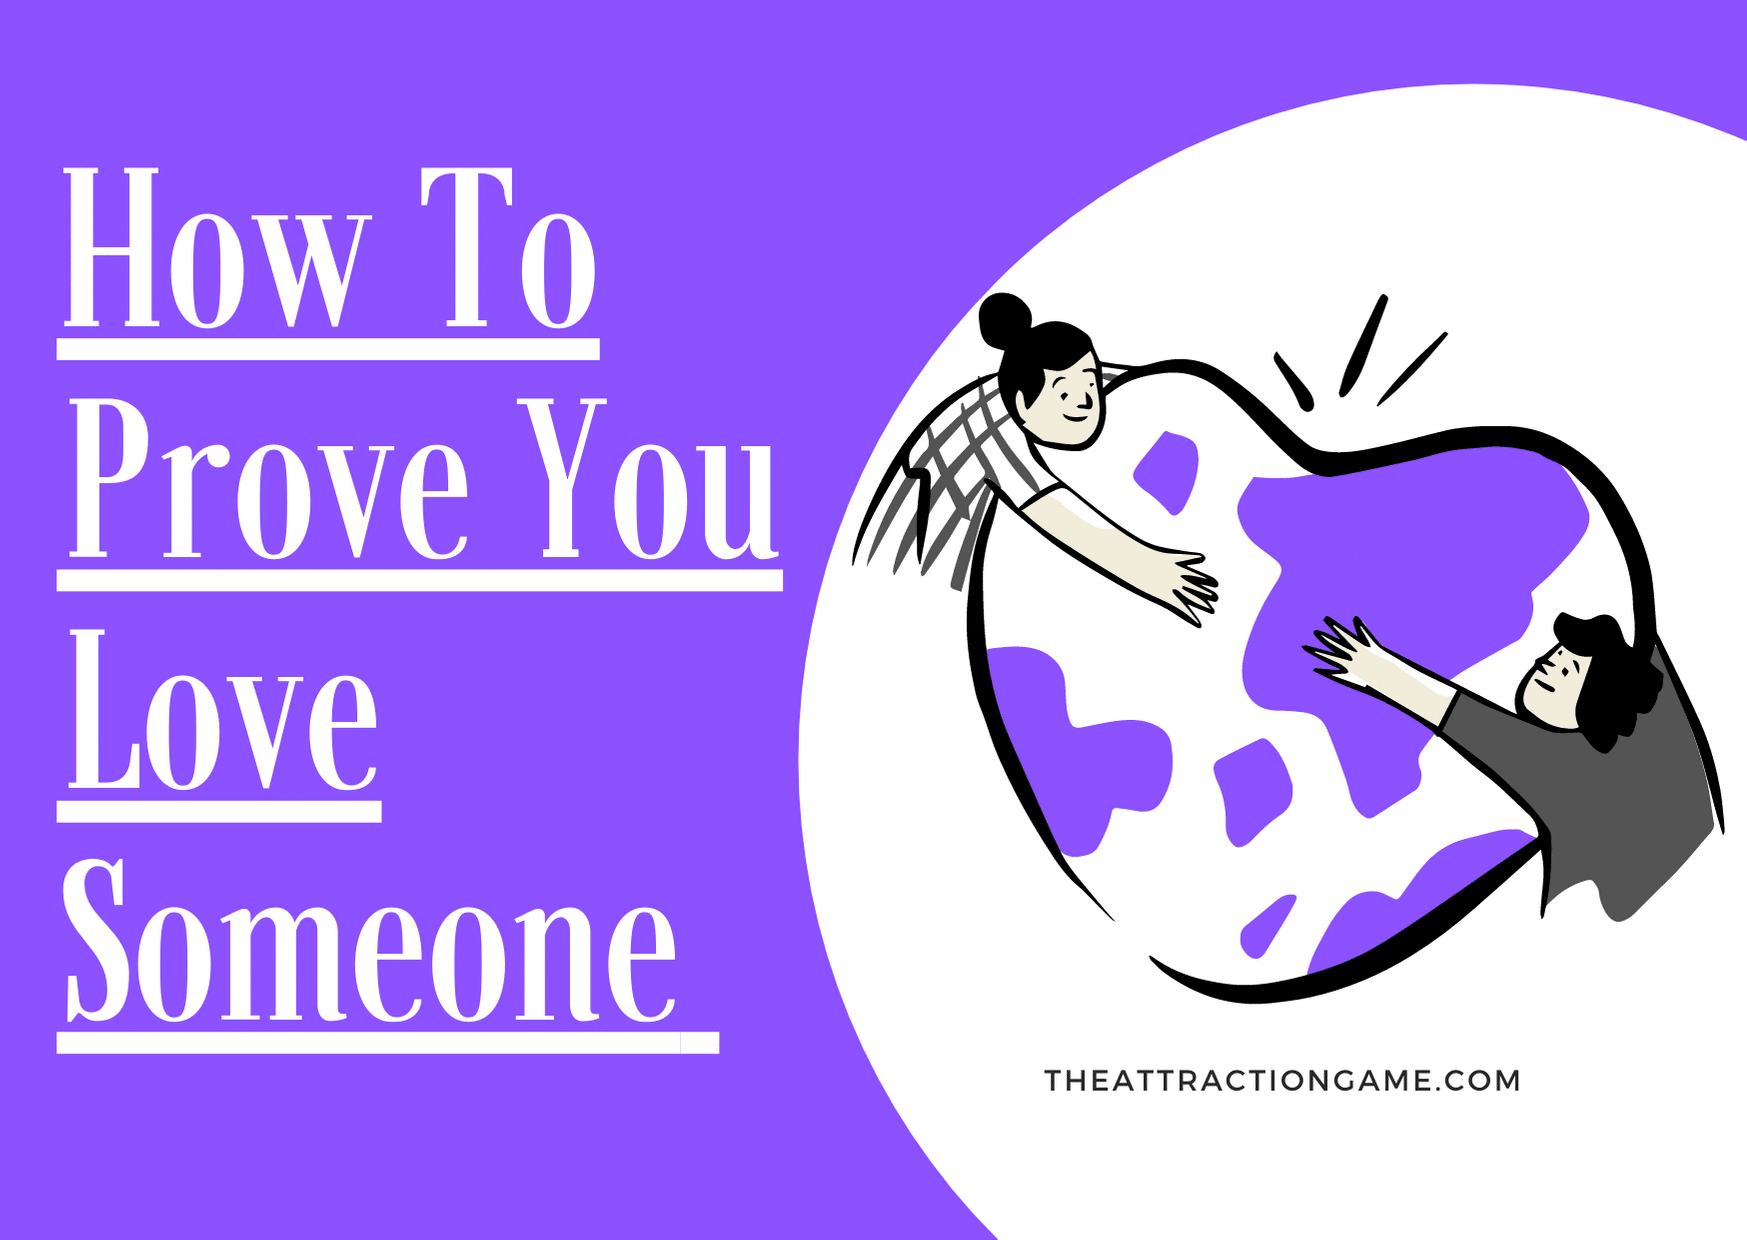 ways to prove you love someone, ways to prove your love, tips on showing your love, how to prove that you love someone,proving that you love someone